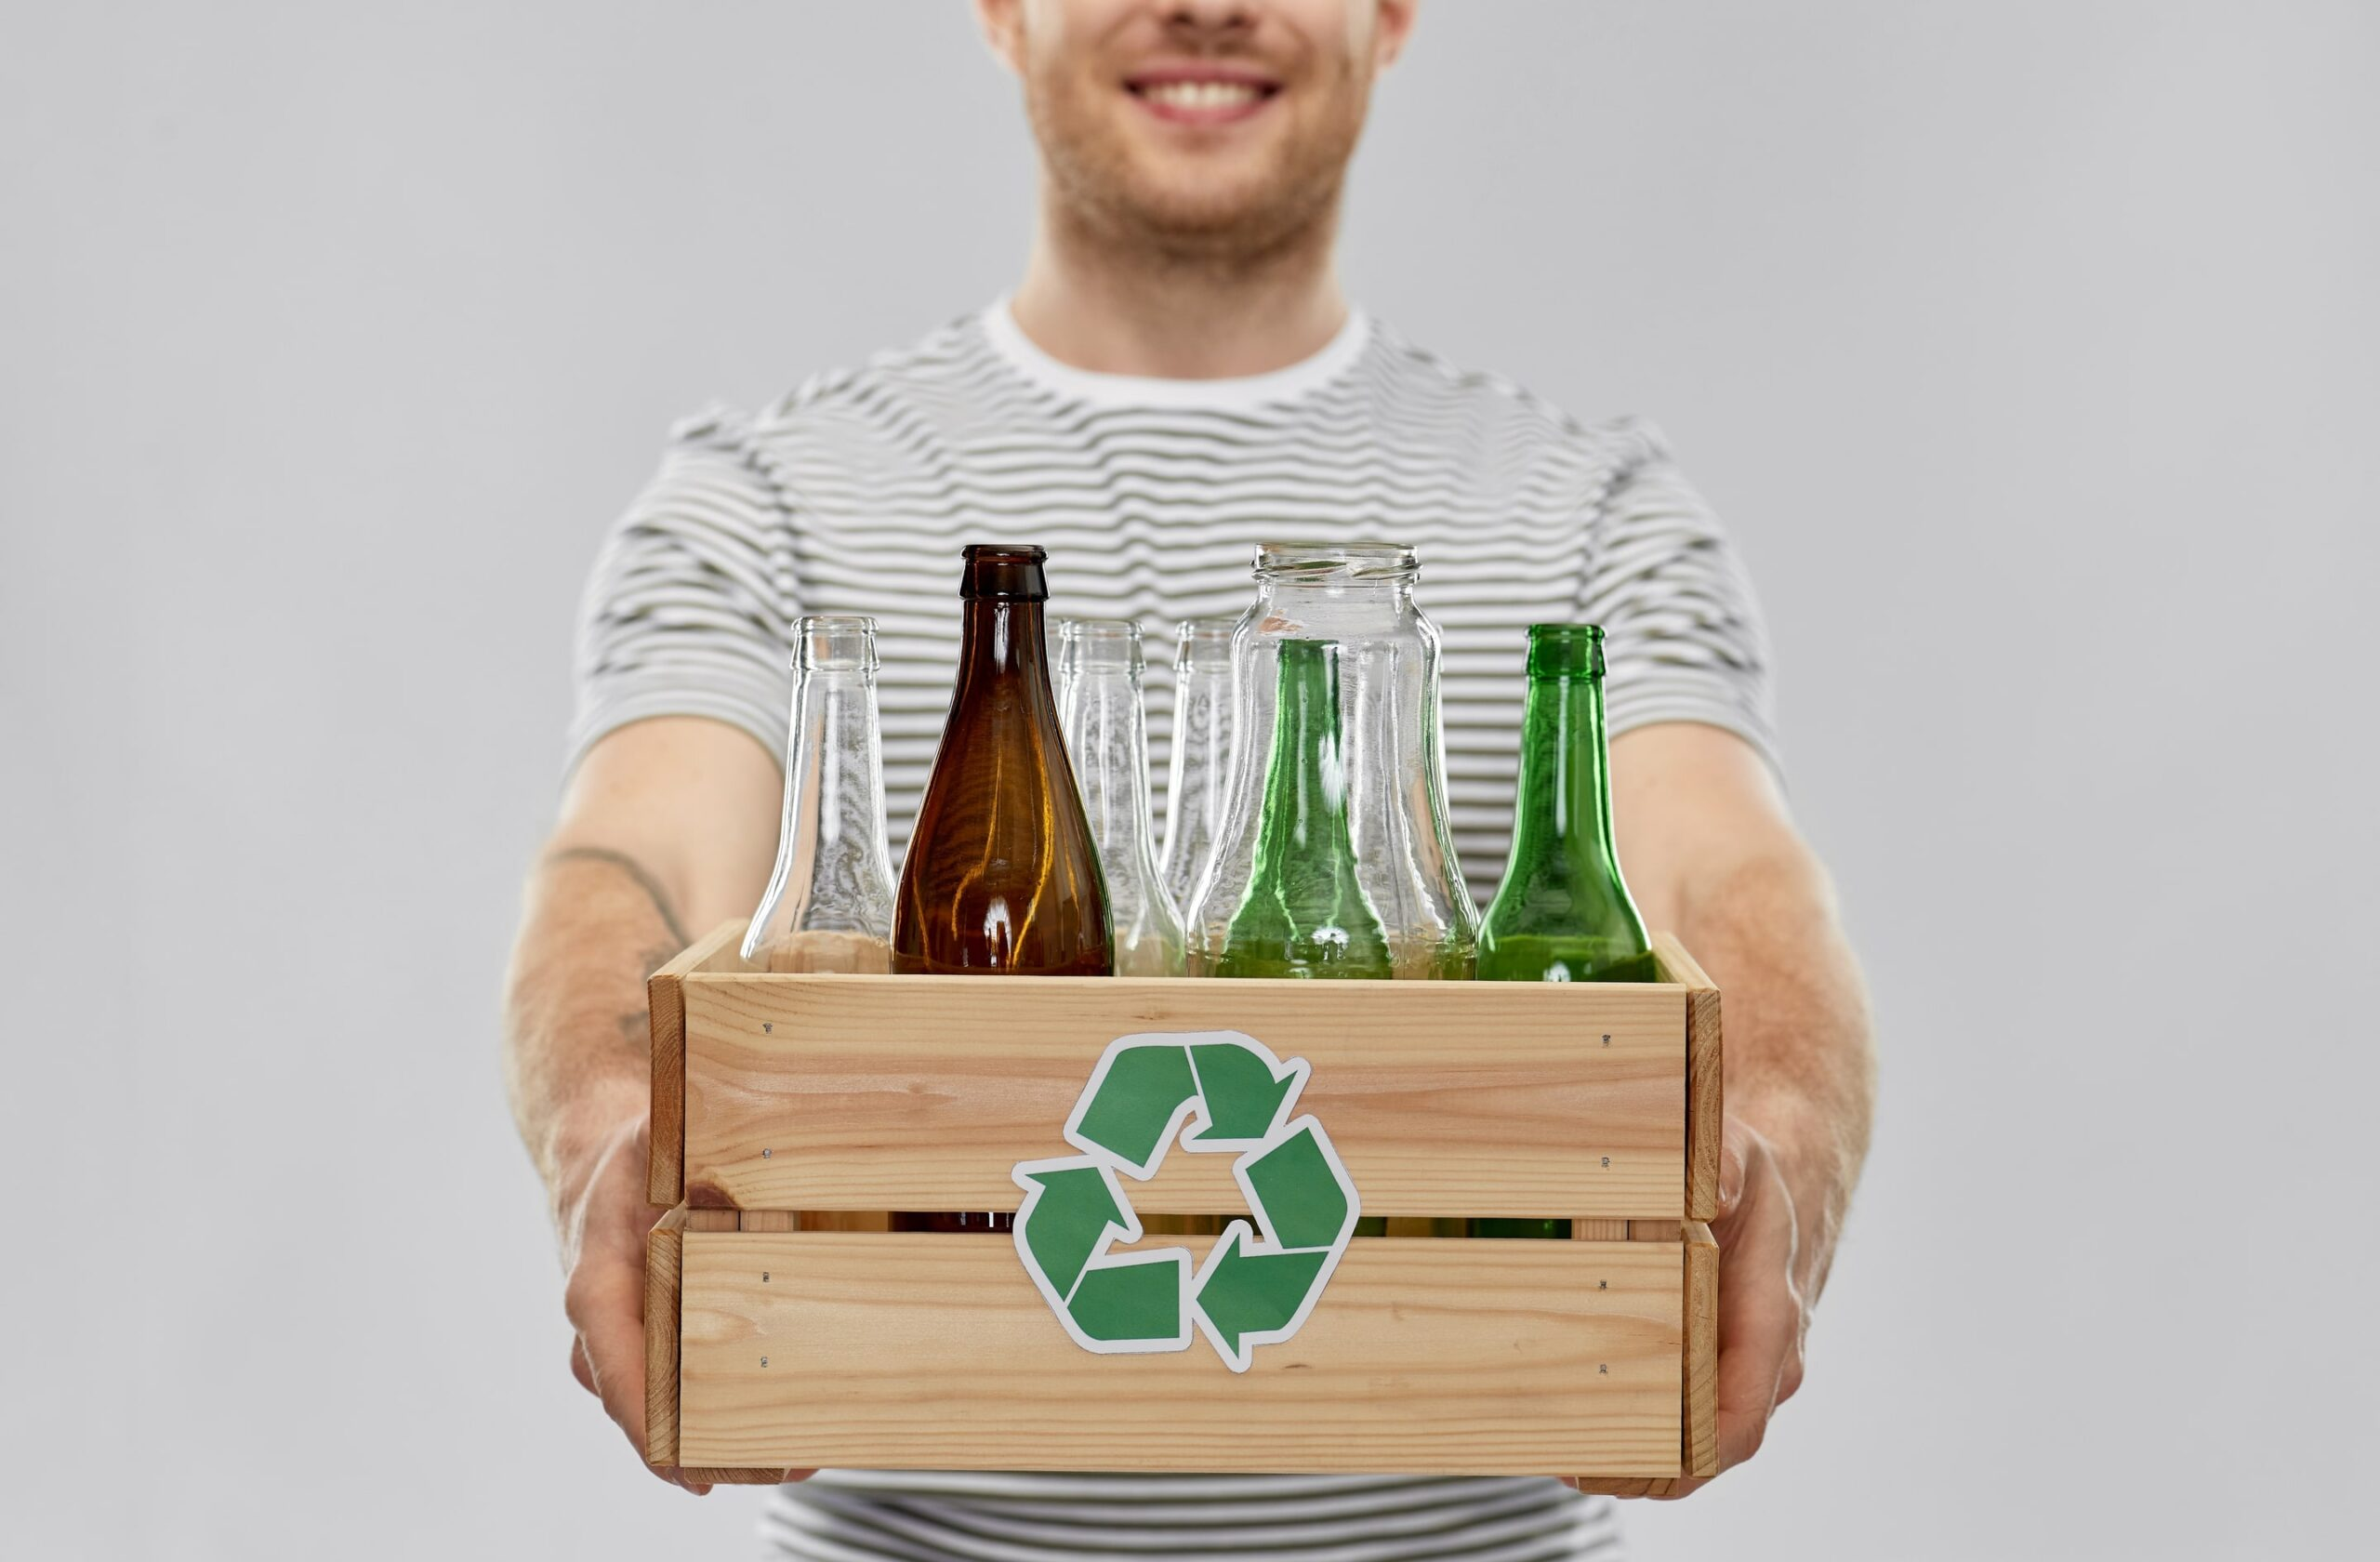 where and how to recycle glass properly